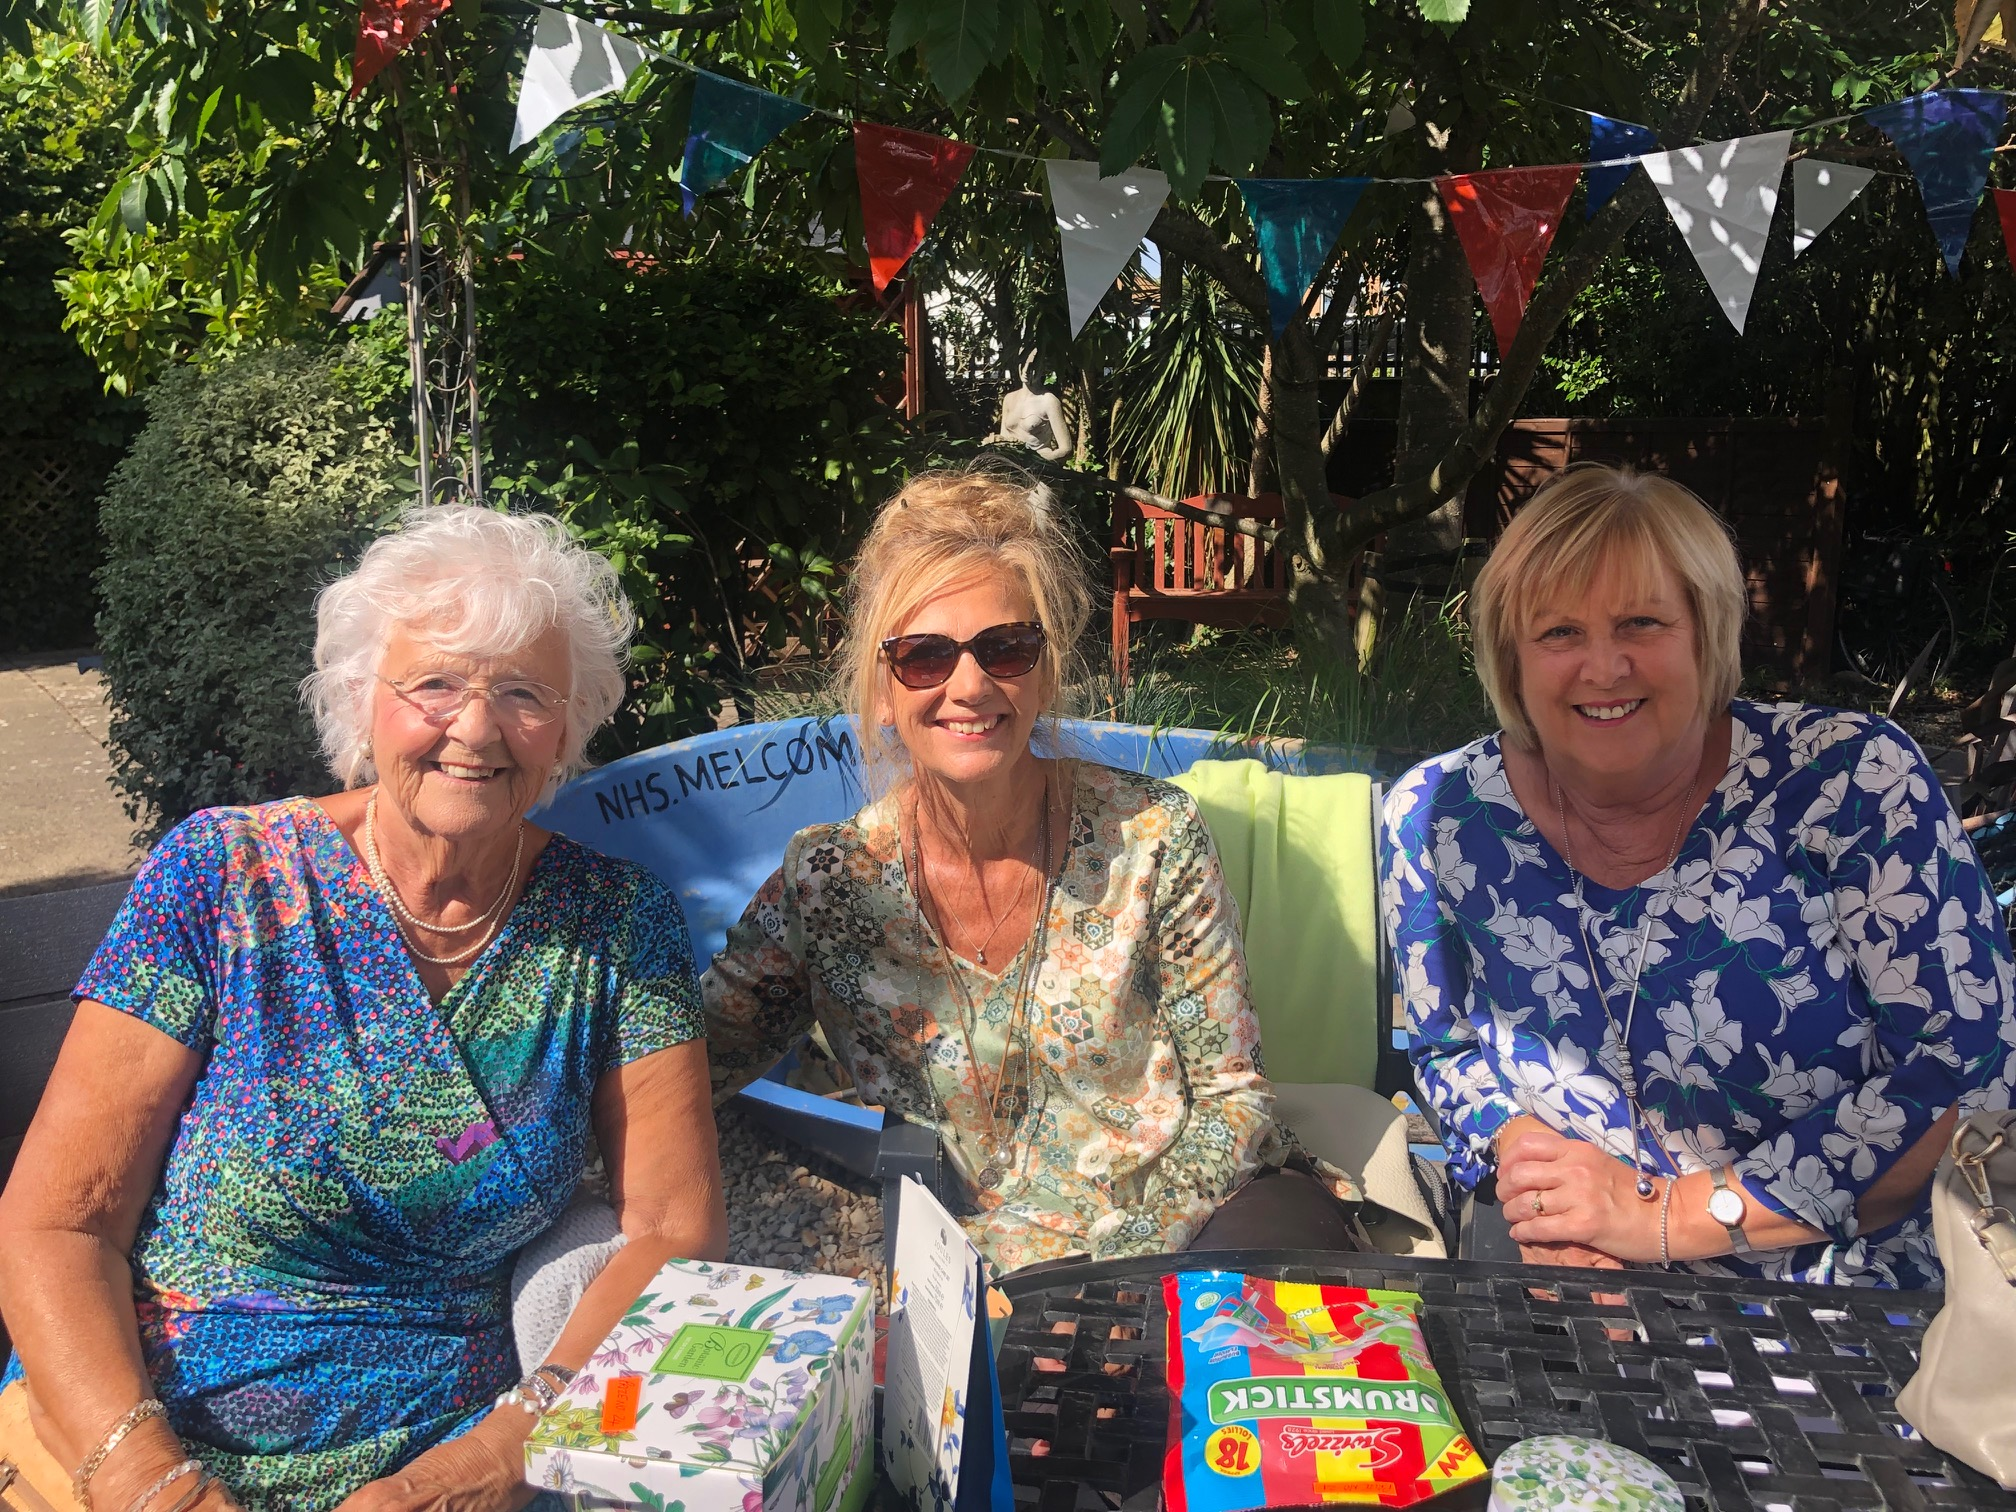 The_Aplin_family_-_Mrs_Aplin_and_daughters_Jennie_and_Gill_who_opened_the_railway_memory_themed_garden_area.jpg